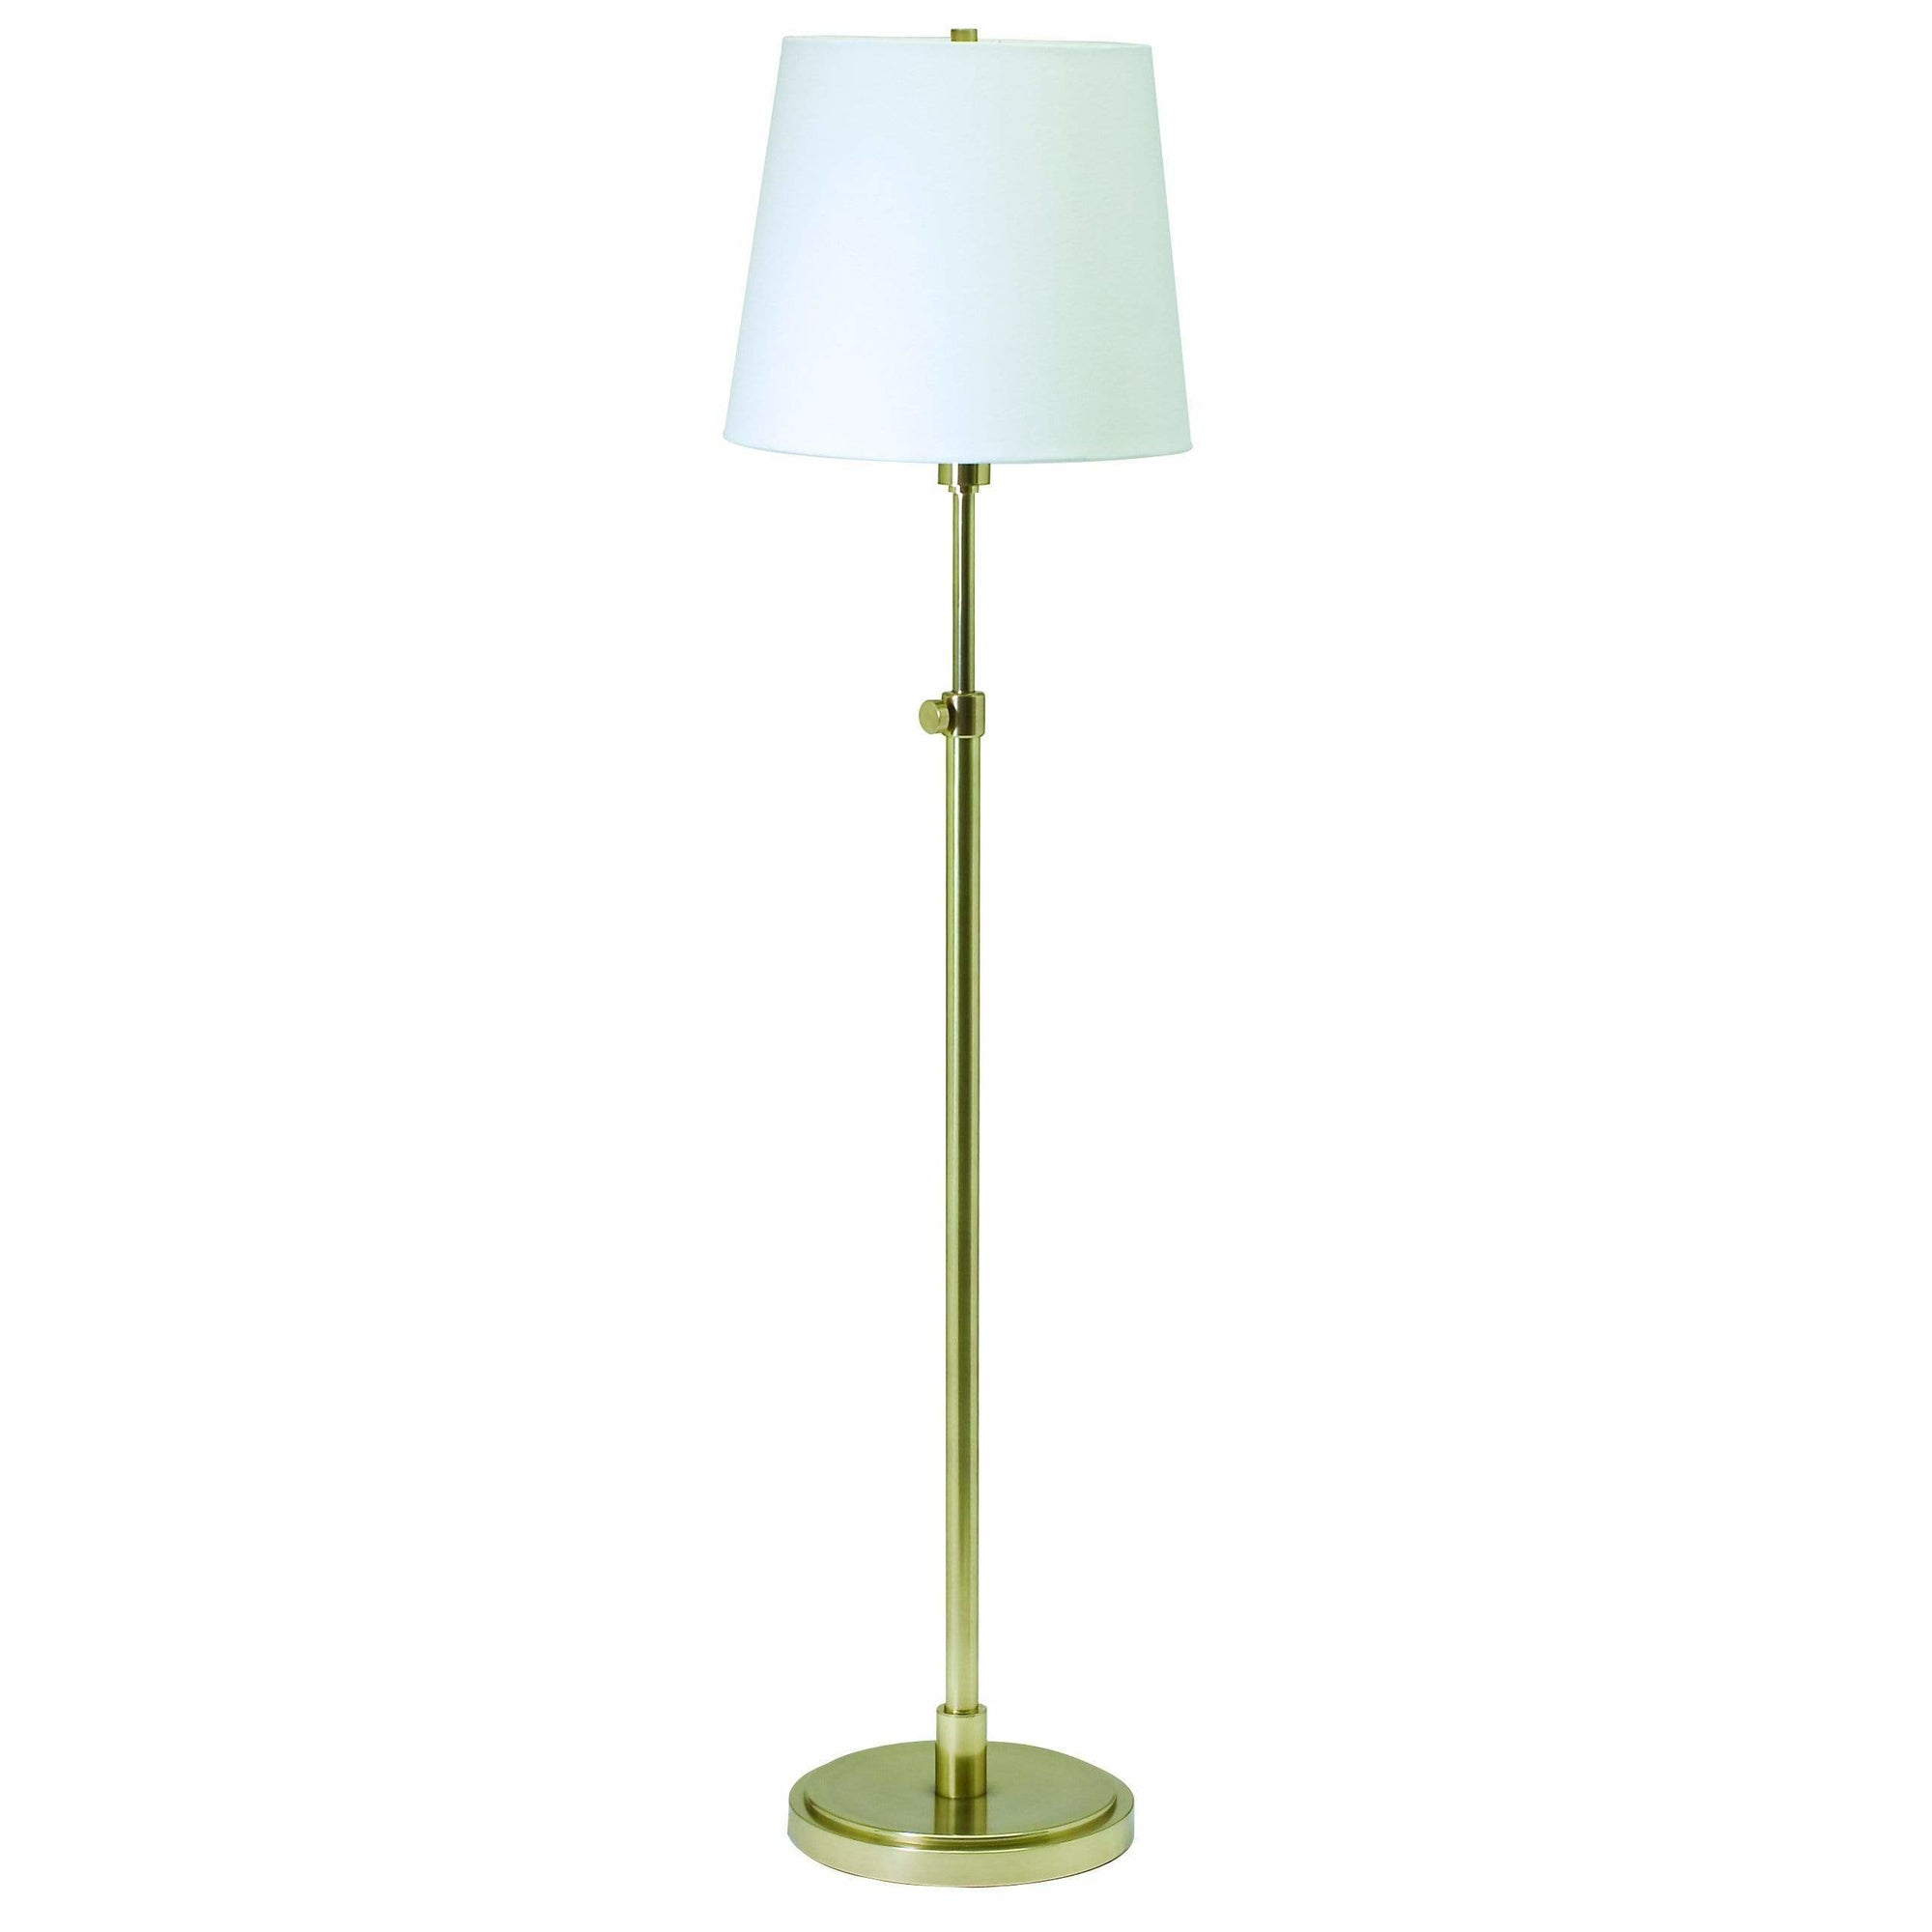 House Of Troy Floor Lamps Townhouse Adjustable Floor Lamp by House Of Troy TH701-RB